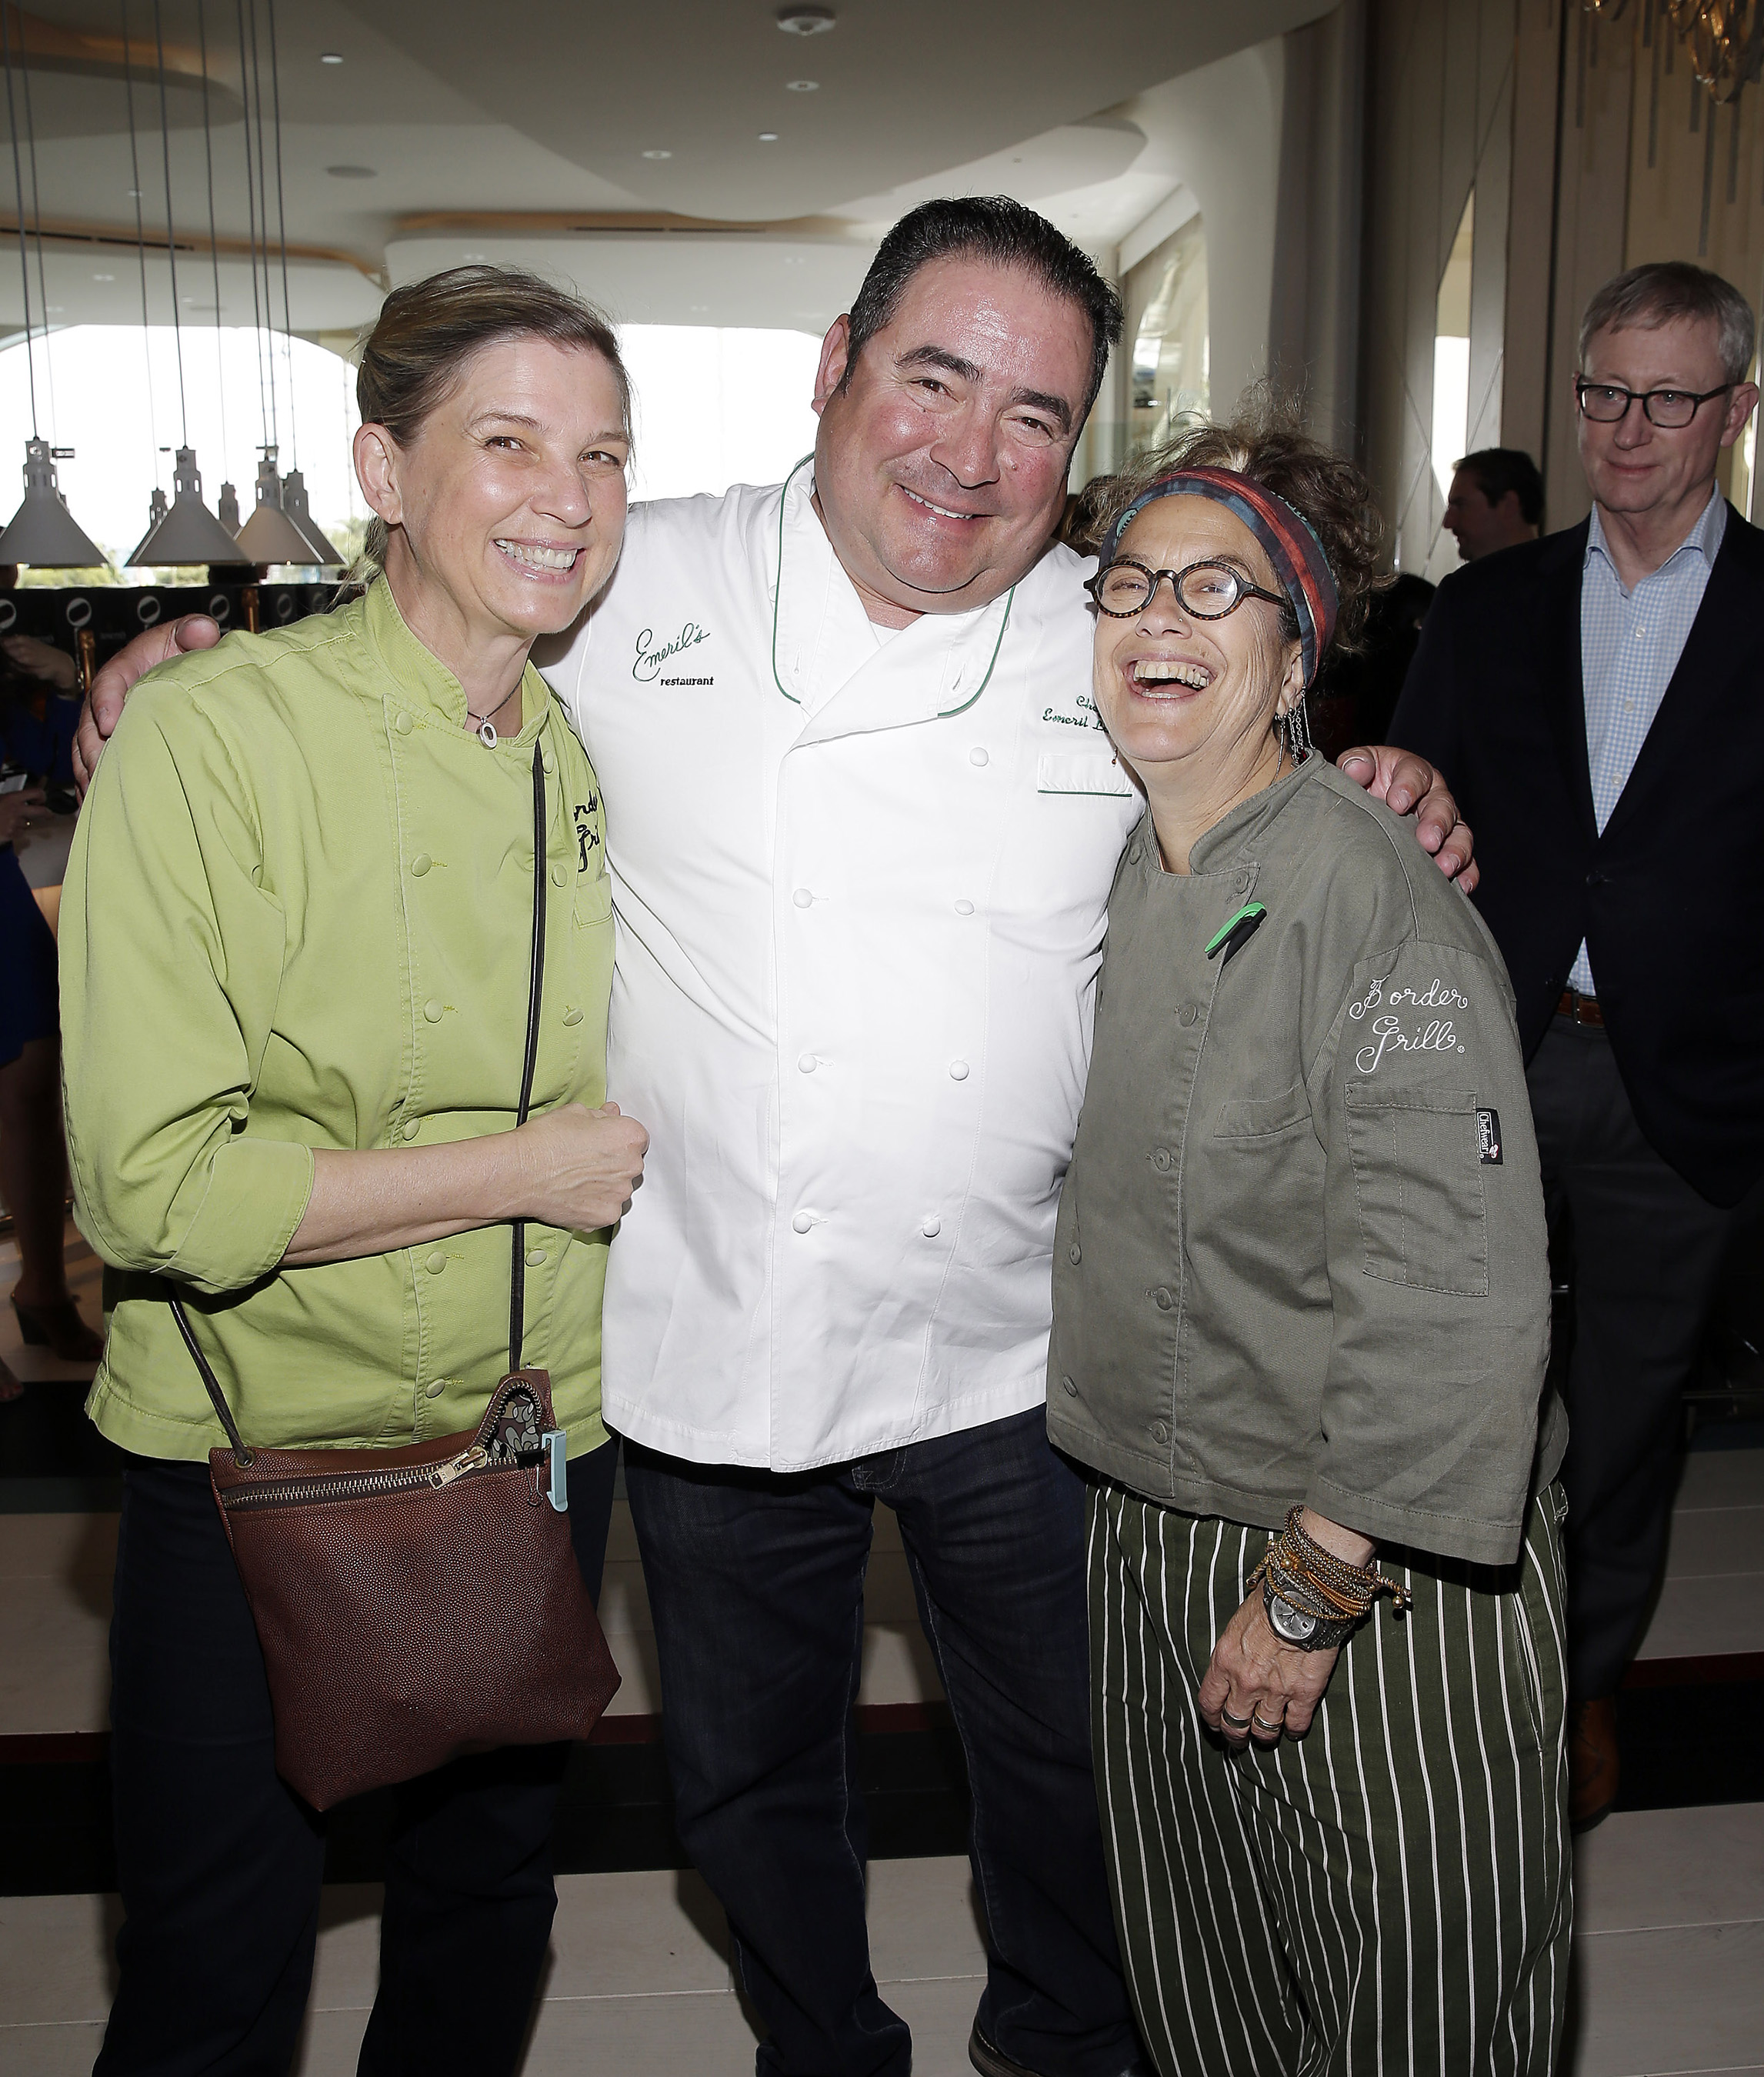 Mary Sue Milliken, Emeril Lagasse and Susan Feniger